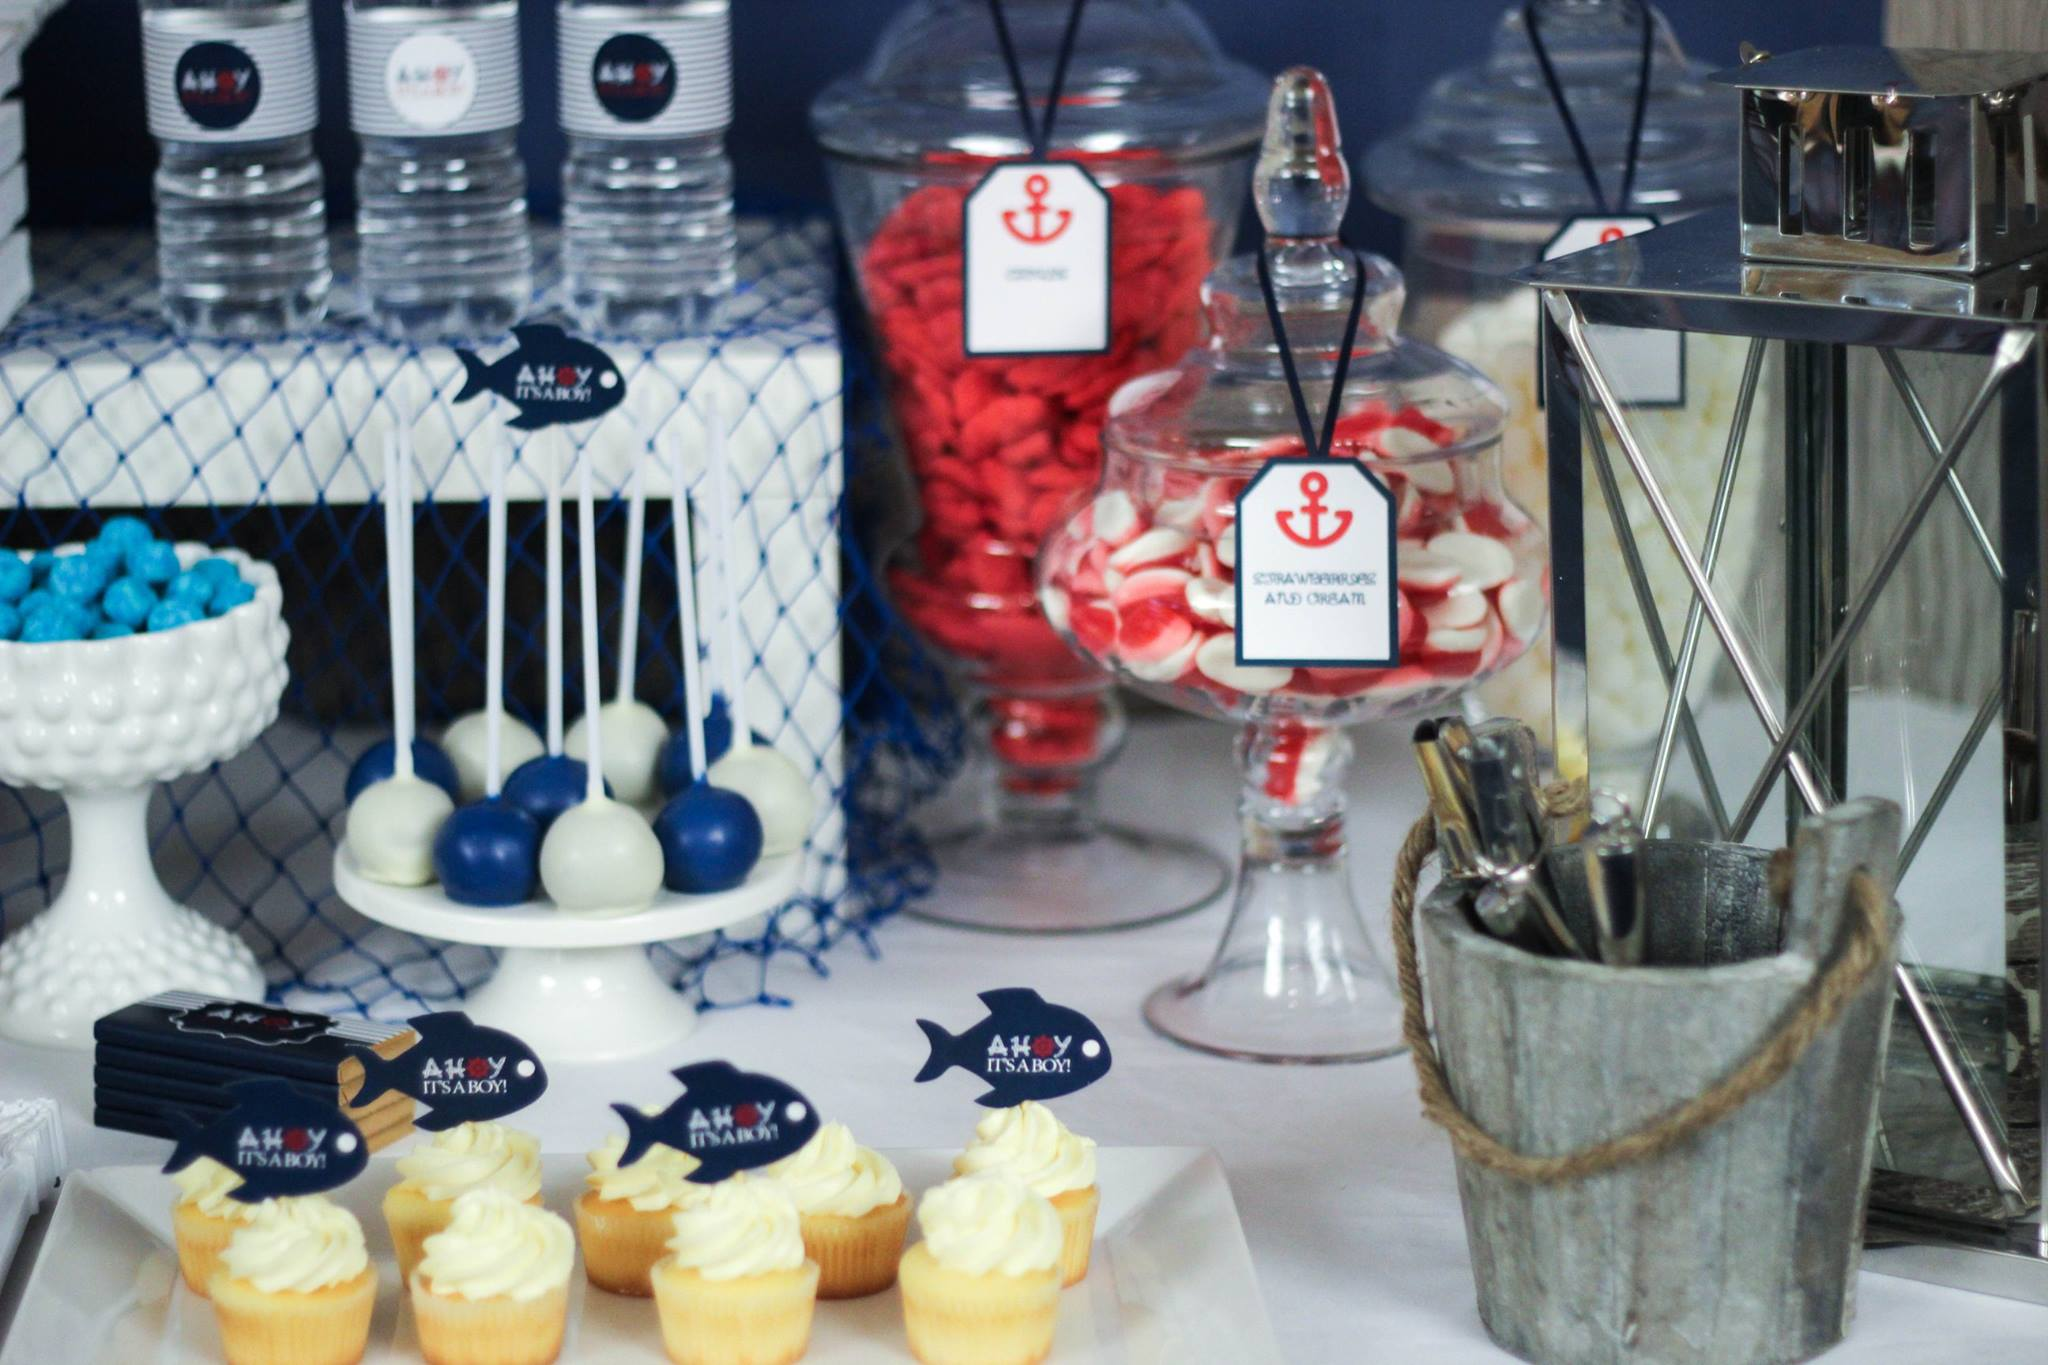 ahoy nautical baby shower decoration ideas dessert buffet table